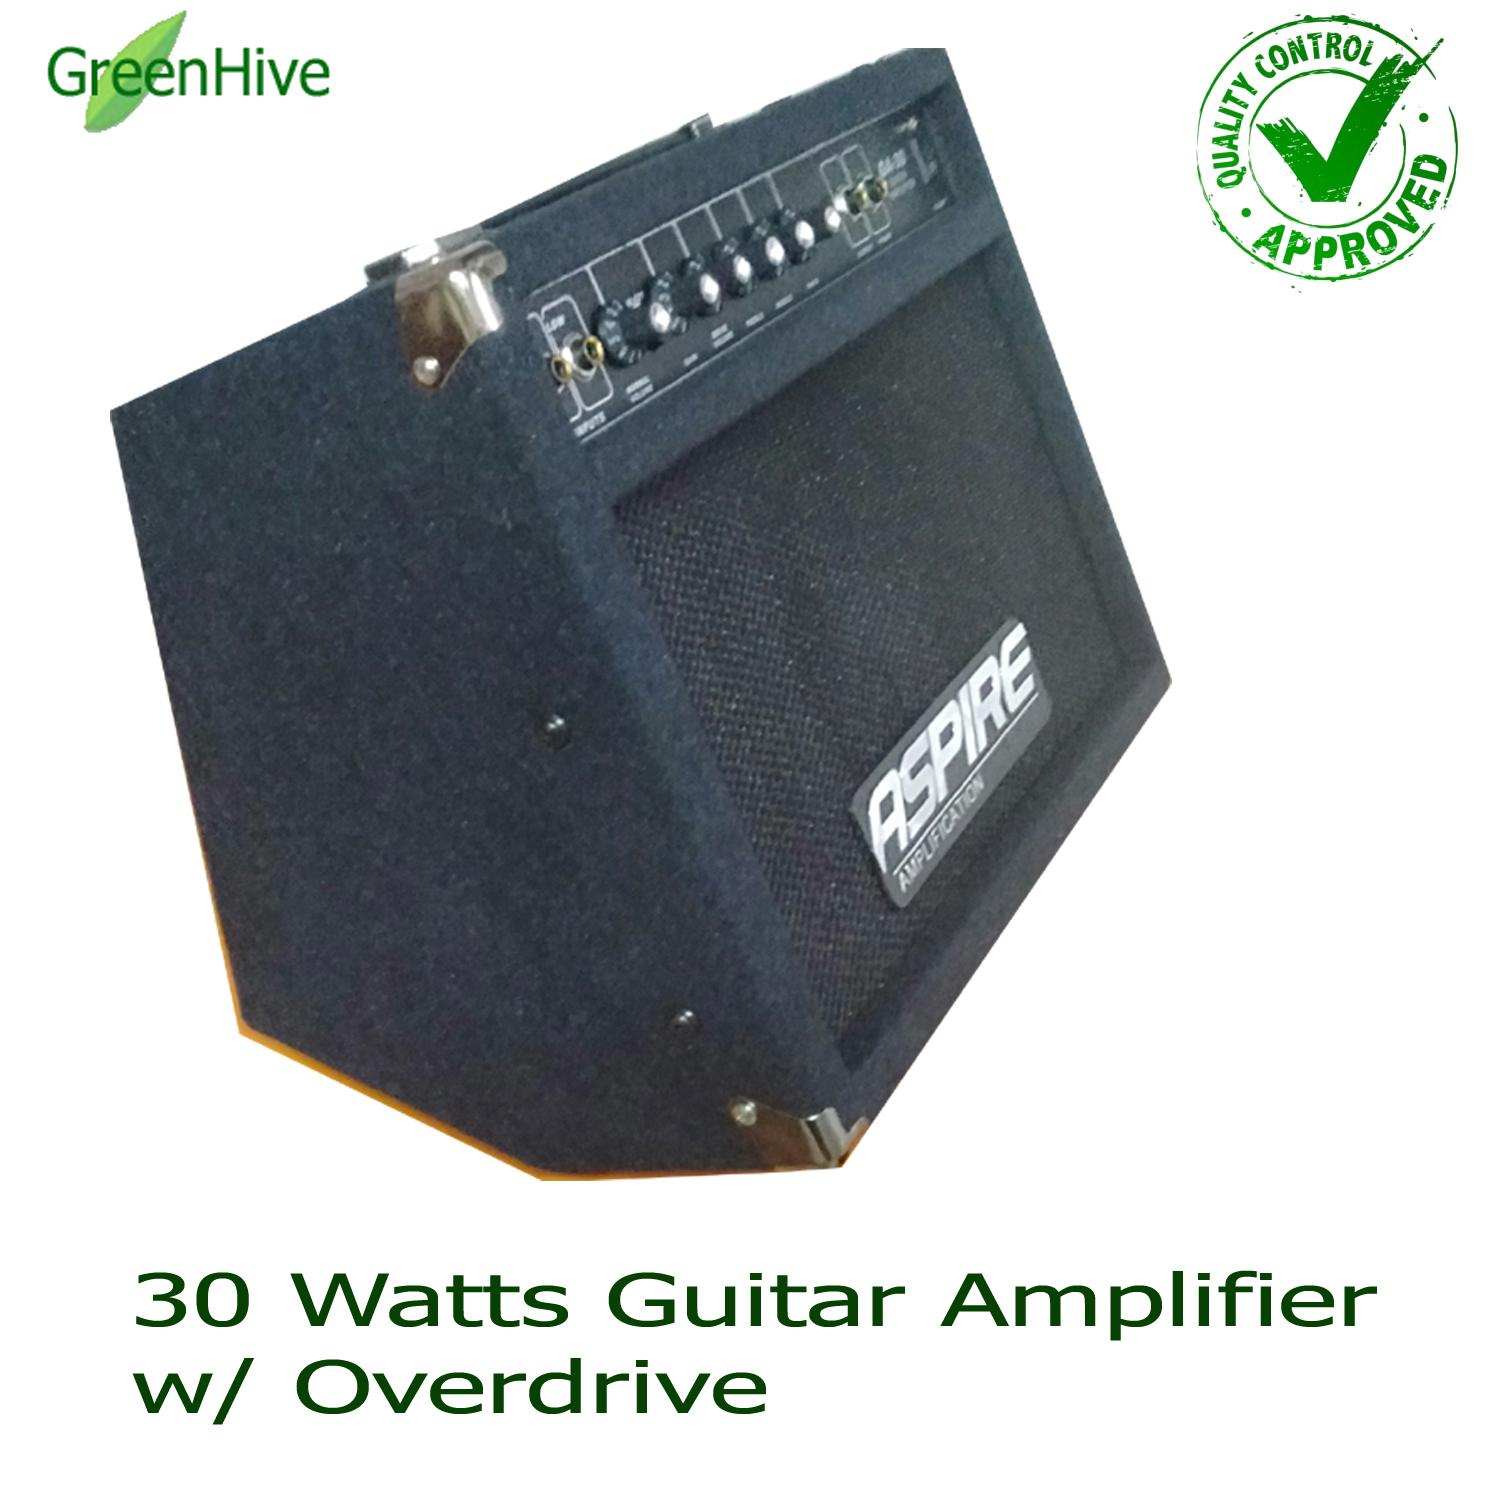 Guitar Amp For Sale Electric Best Seller Prices Fernandes Wiring Diagram Amplifier Aspire 30watts Ga 30 With Overdrive Alternative Brand To